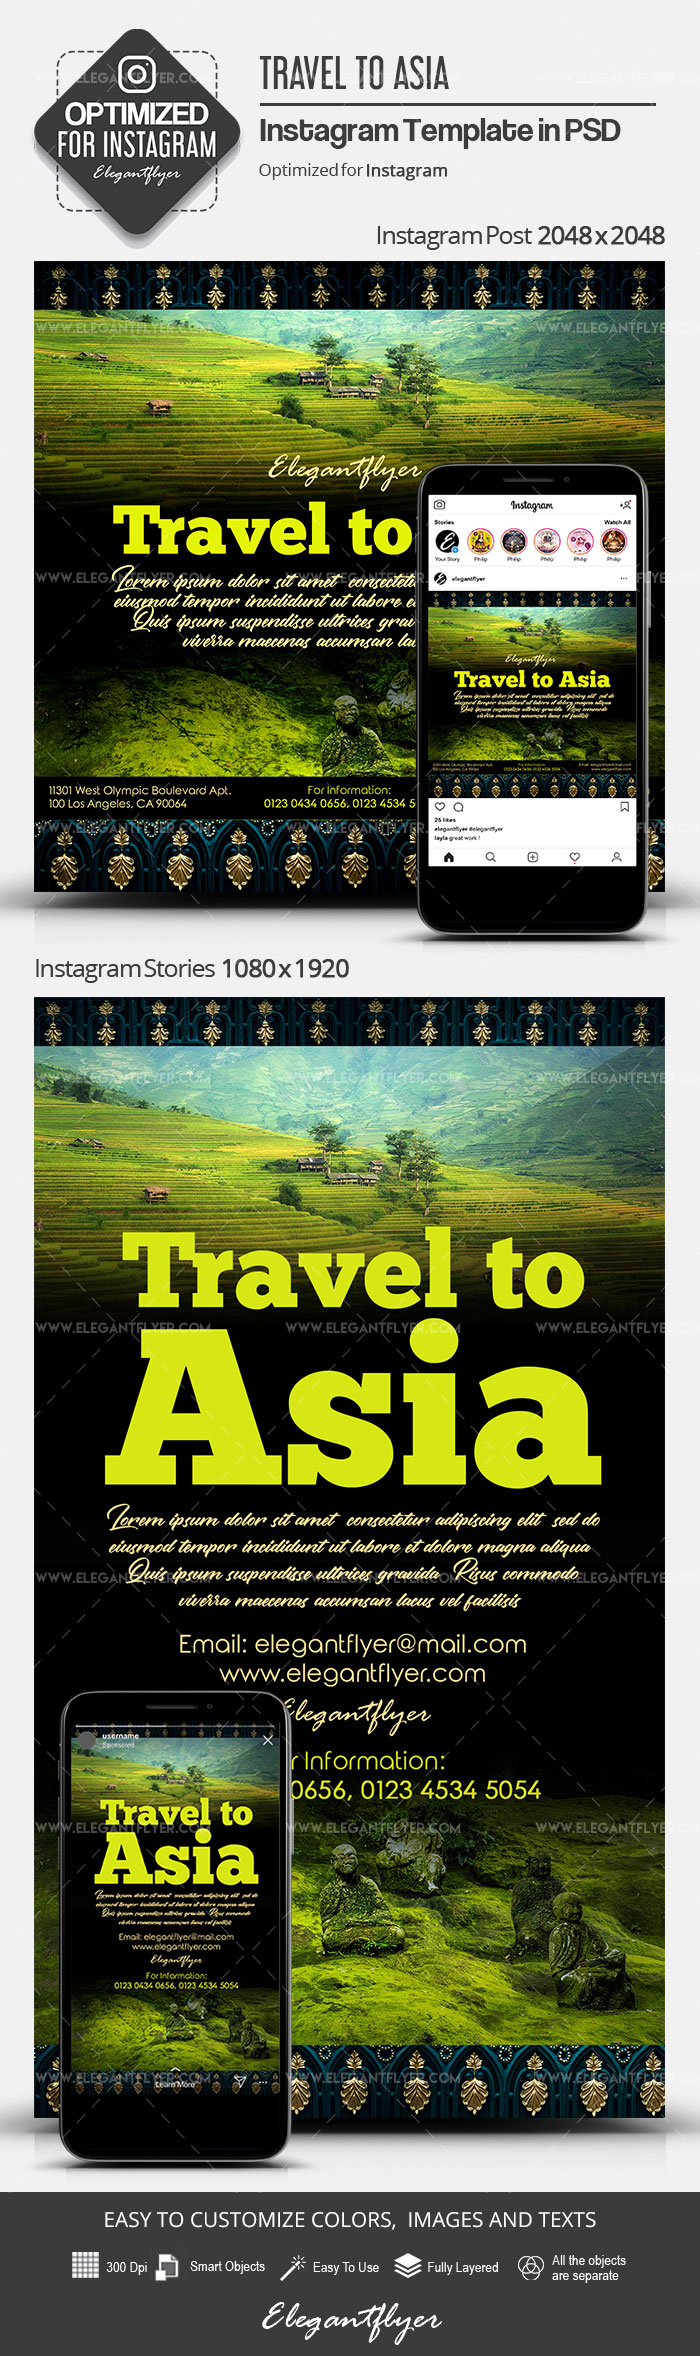 Travel to Asia – Instagram Stories Template in PSD + Post Templates